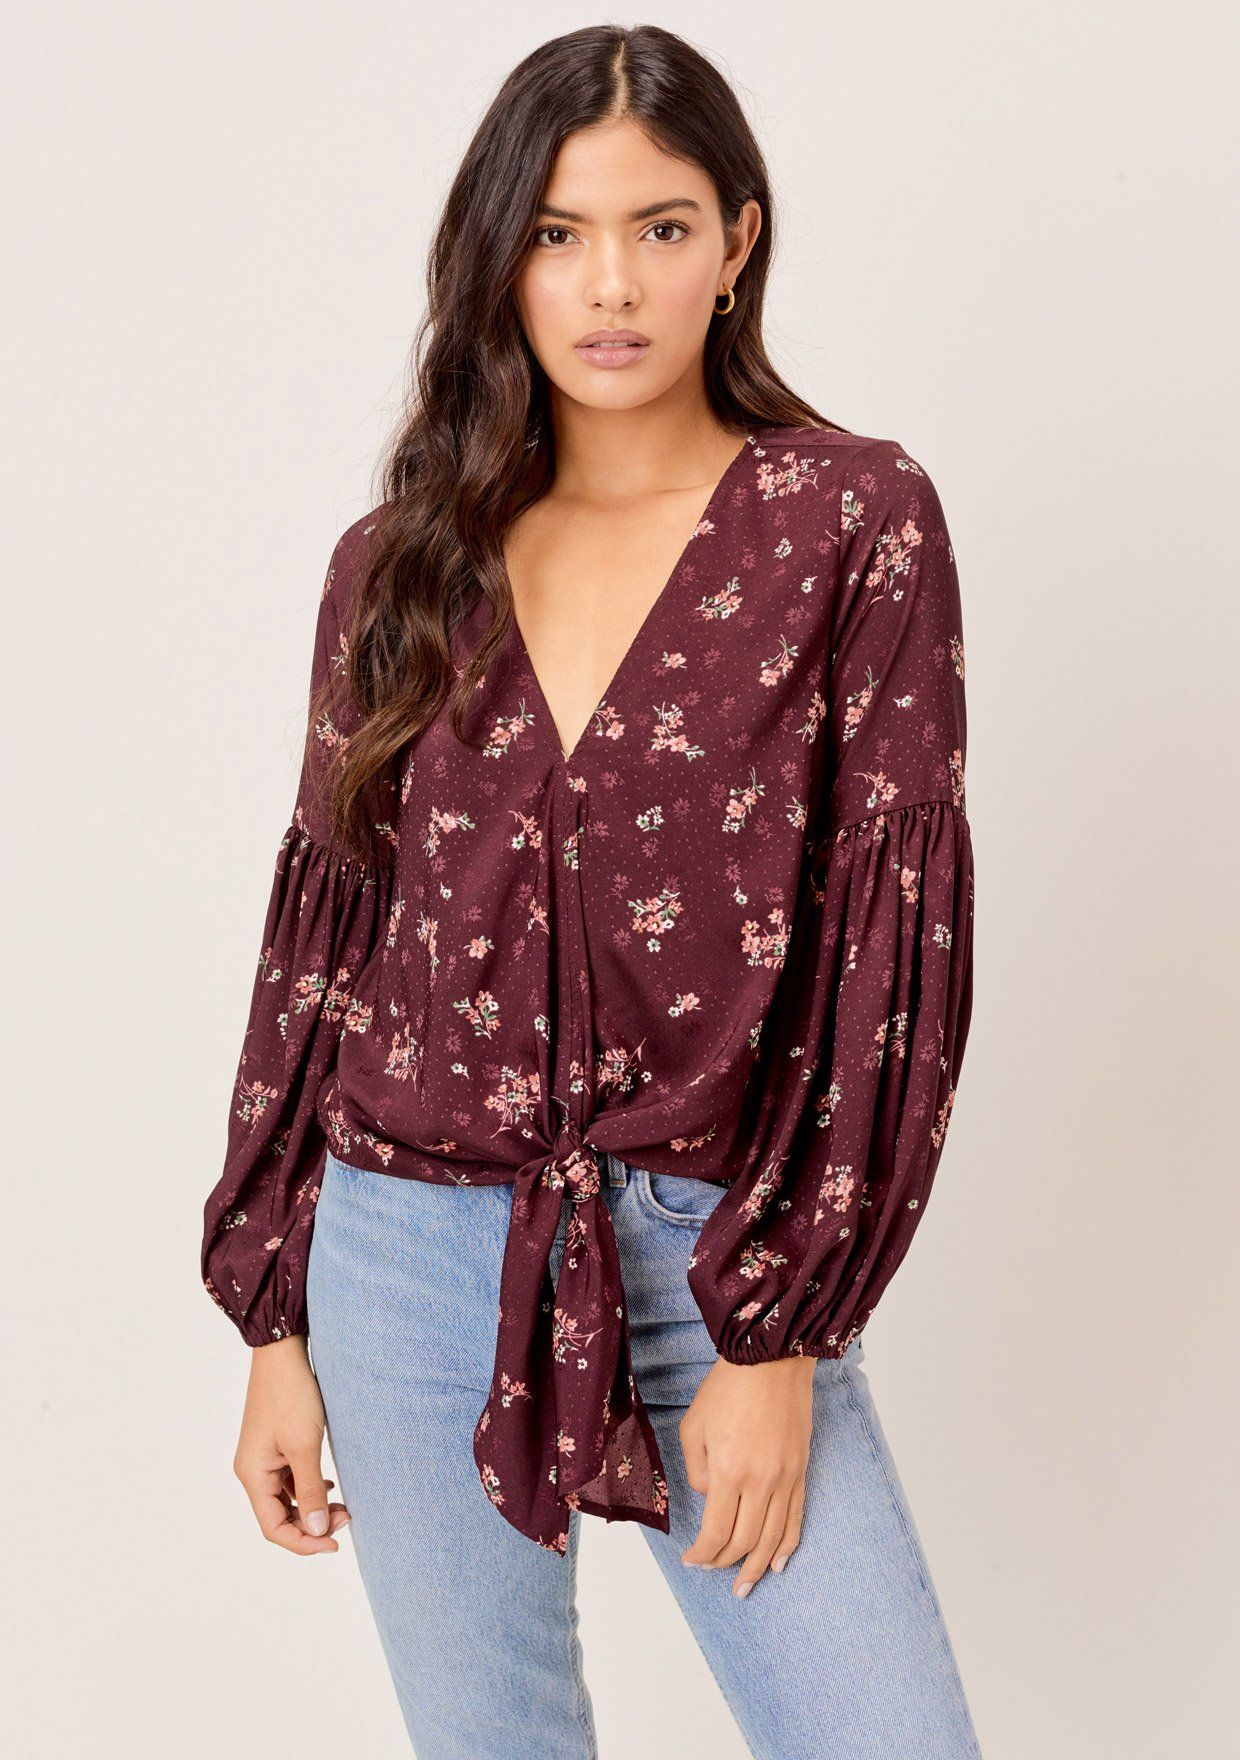 [Color: Merlot/Rose] Lovestitch Beautiful floral tie front top with boho chic volume sleeves.